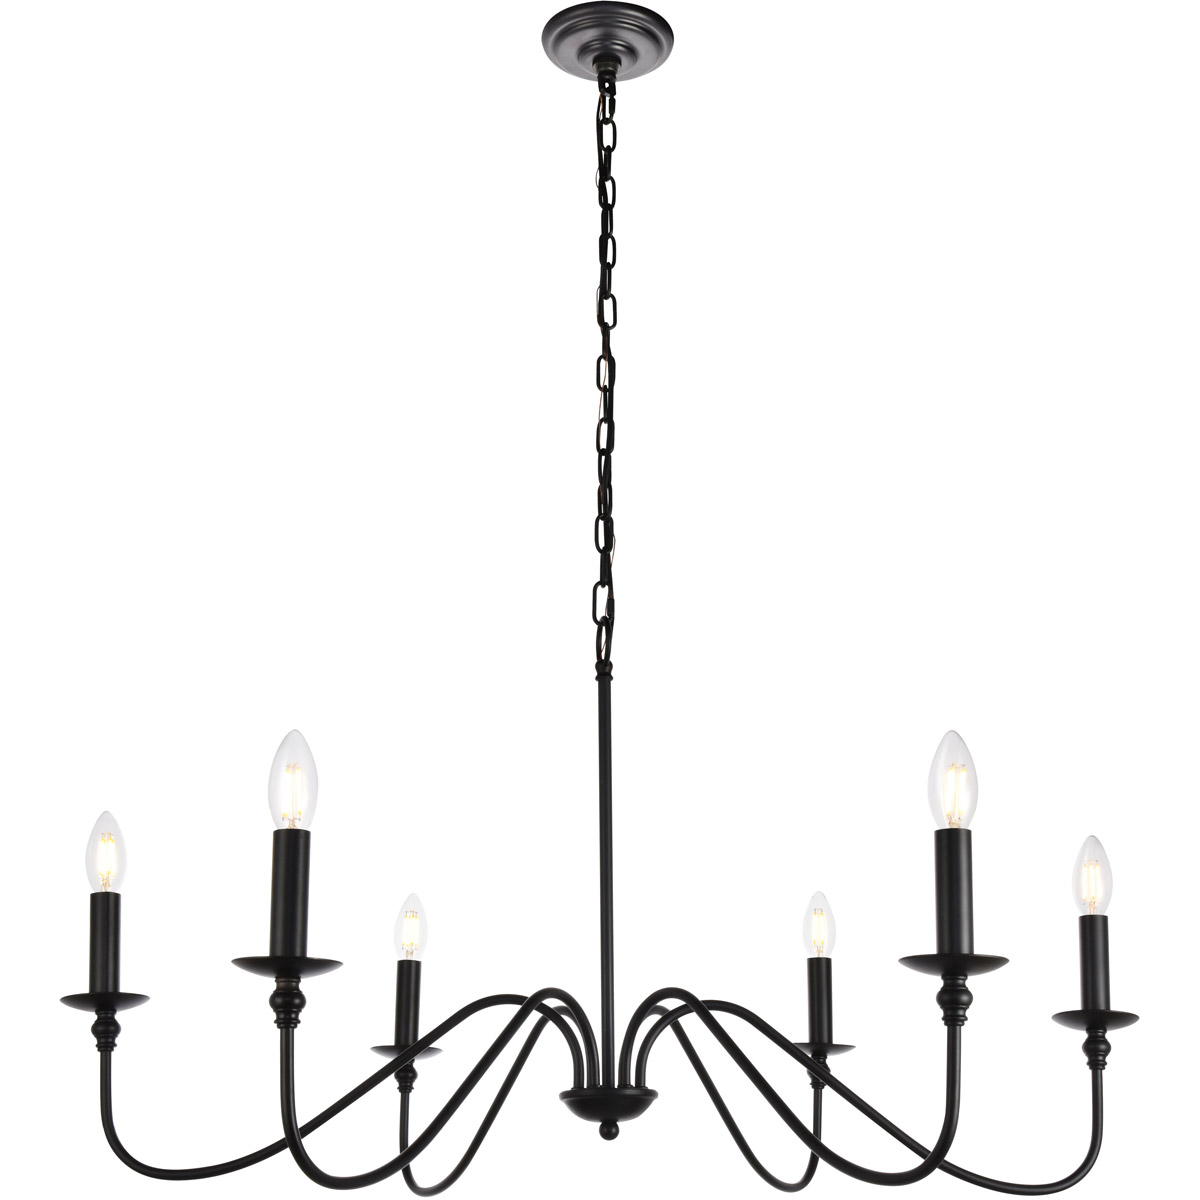 Details About Chandelier Wrought Iron Country Cottage Dining Living Room Kitchen 6 Light 36